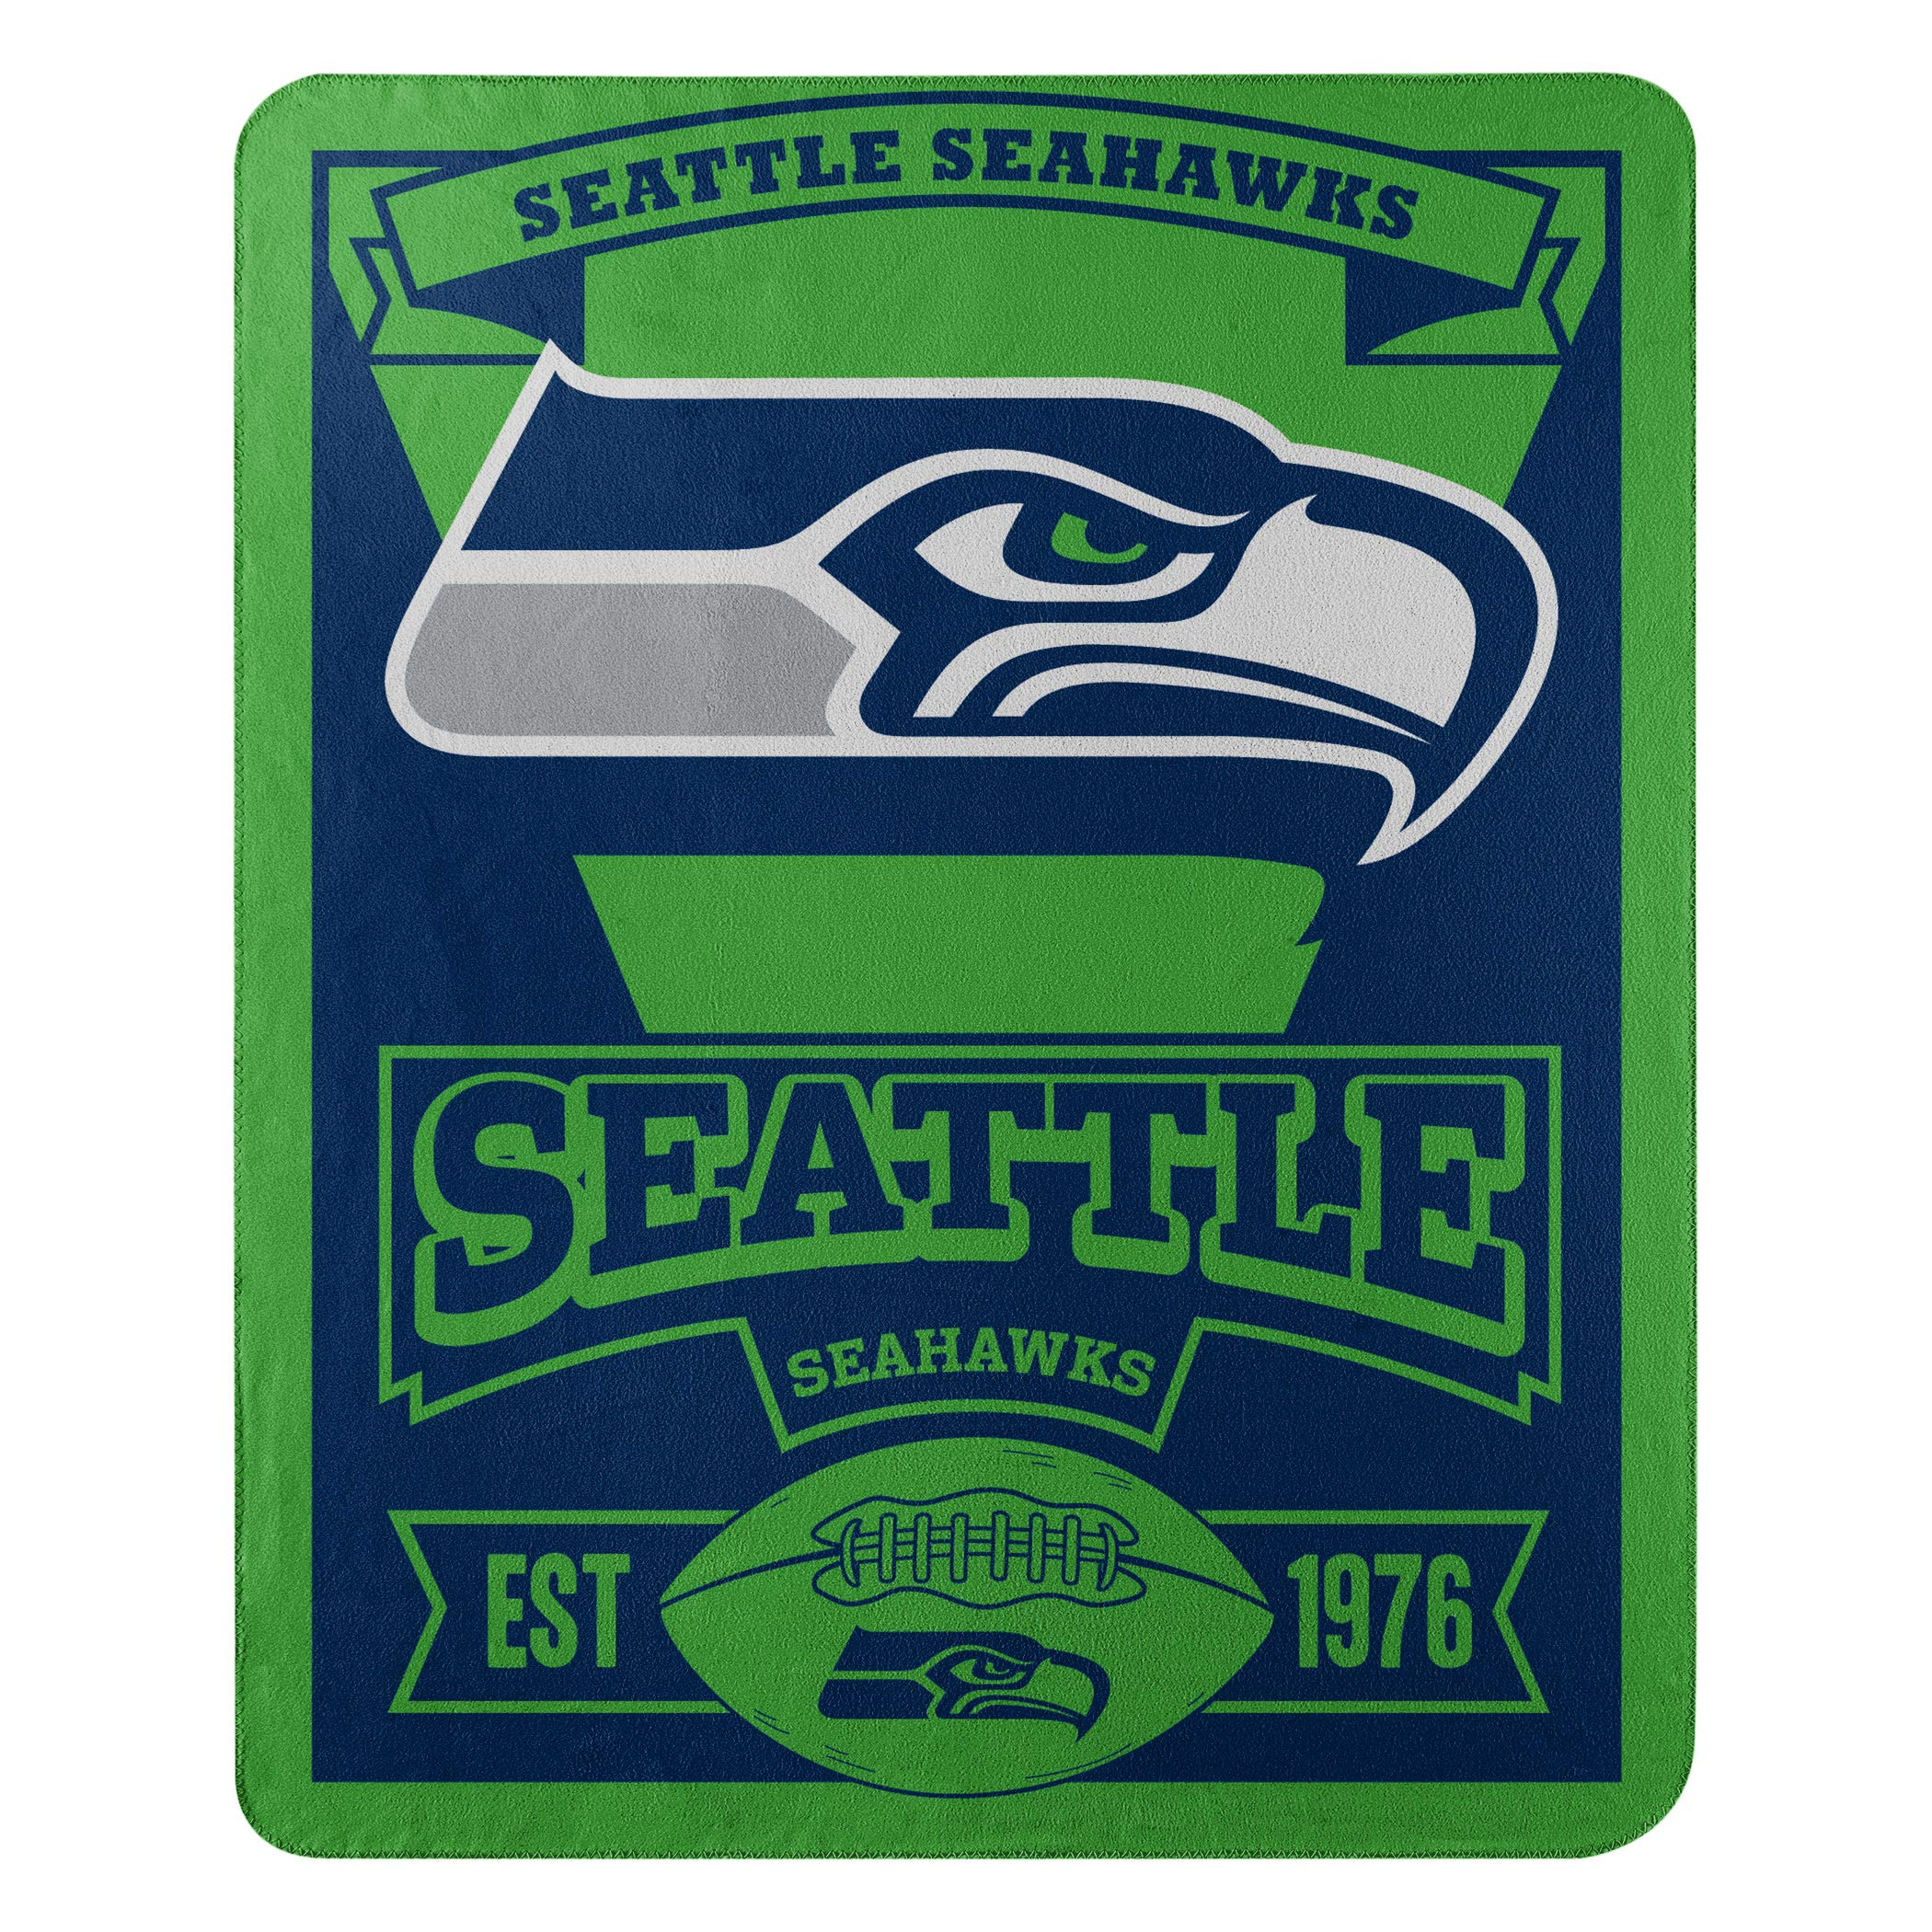 The Northwest Company Officially Licensed NFL Seattle Seahawks Marque Printed Fleece Throw Blanket, 50'' x 60'', Multi Color by The Northwest Company